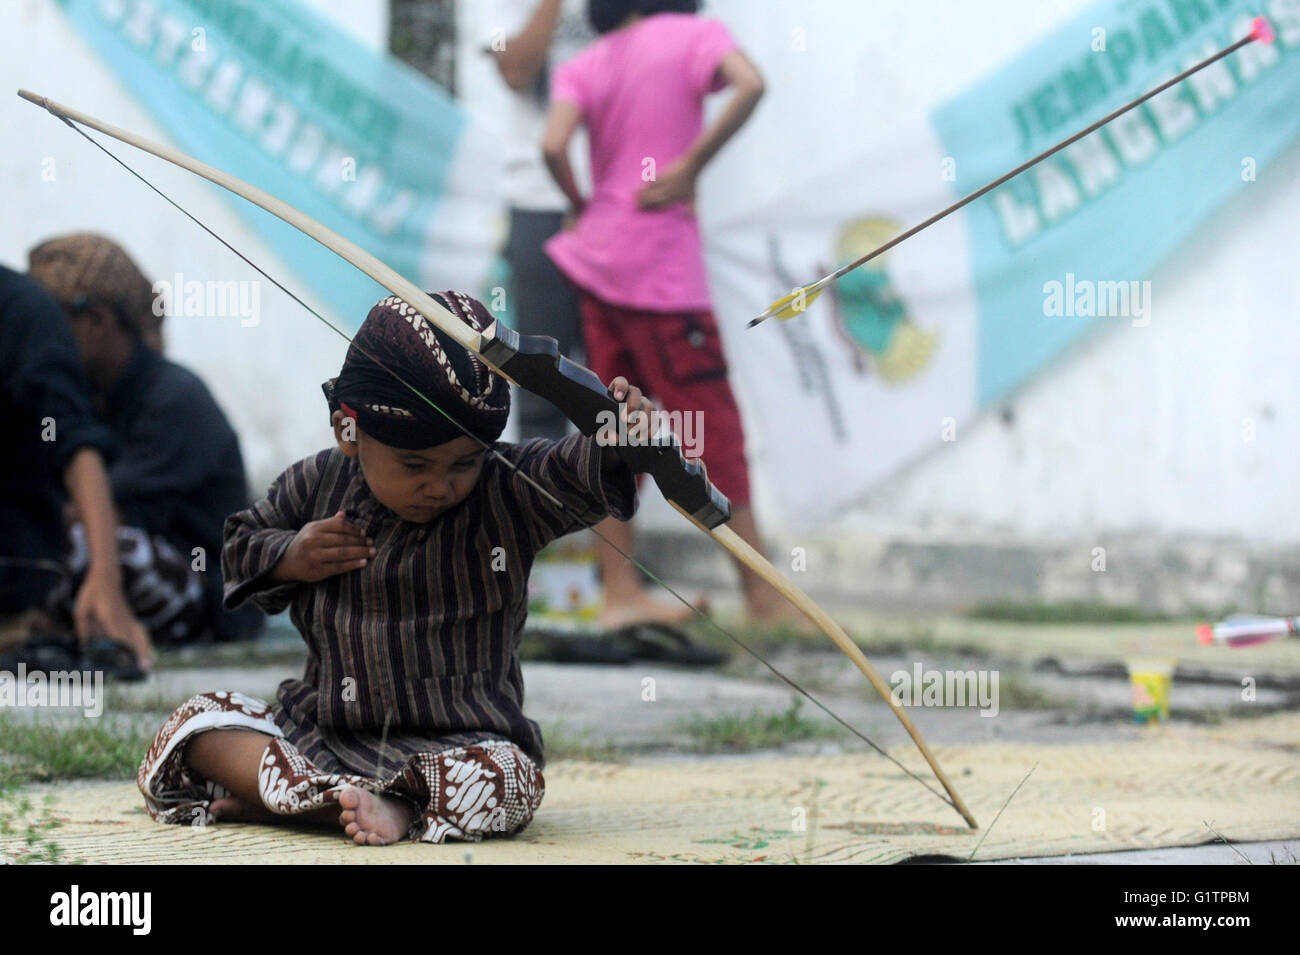 Yogyakarta, Indonesia. 19th May, 2016. A boy participates in a traditional archery contest, or the Jemparing, at Stock Photo